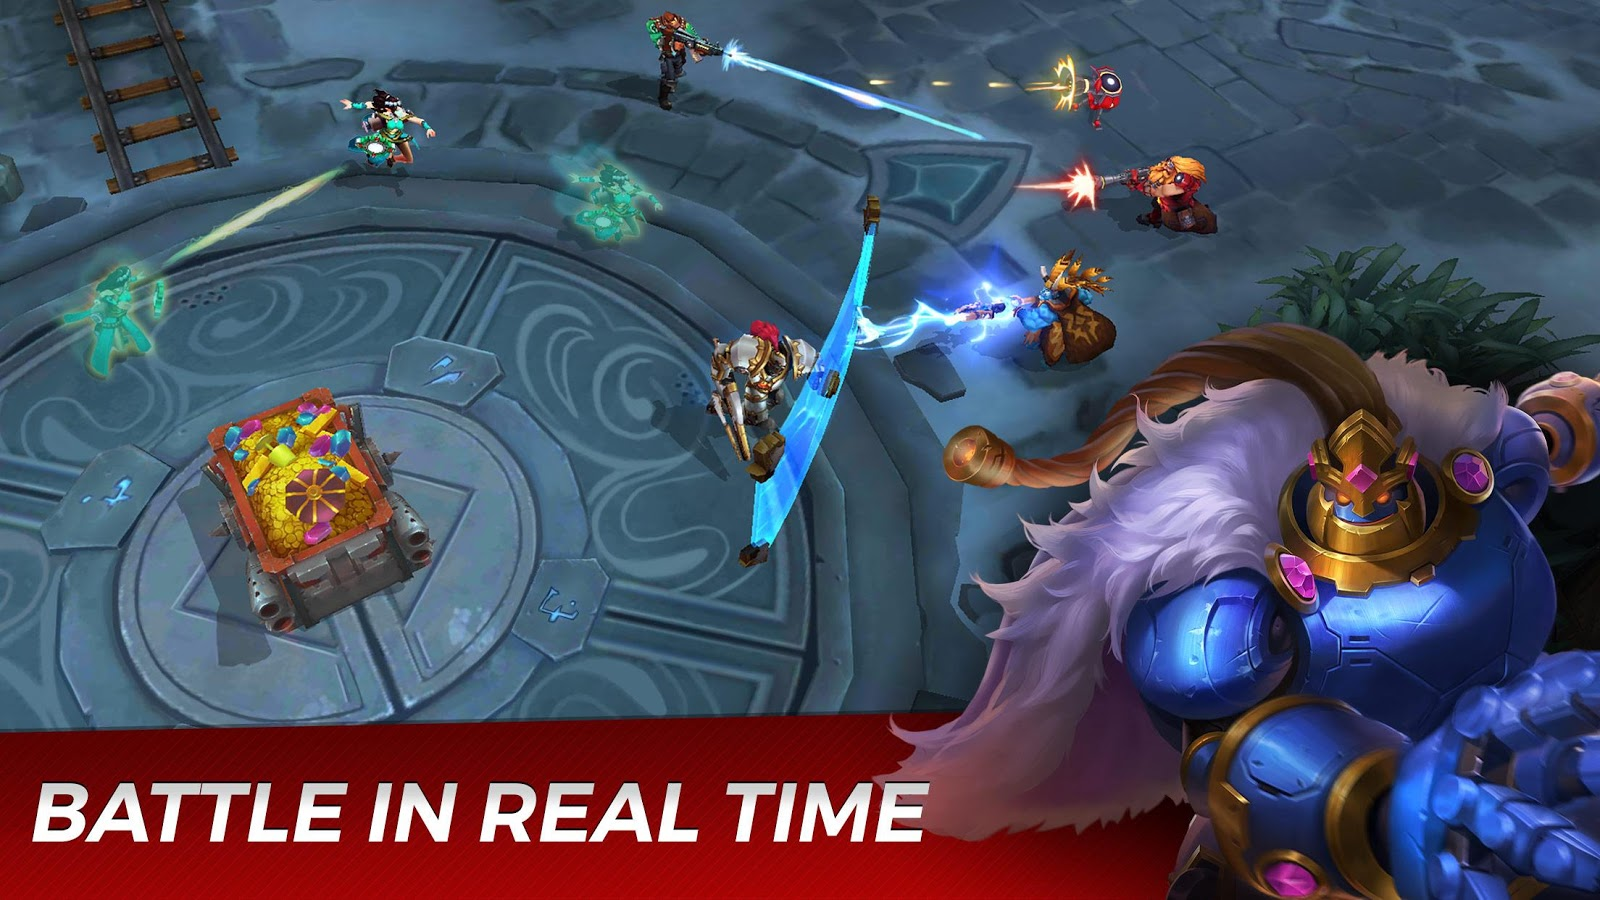 Paladins Strike Apk Data Obb - Free Download Android Game - Jagad id